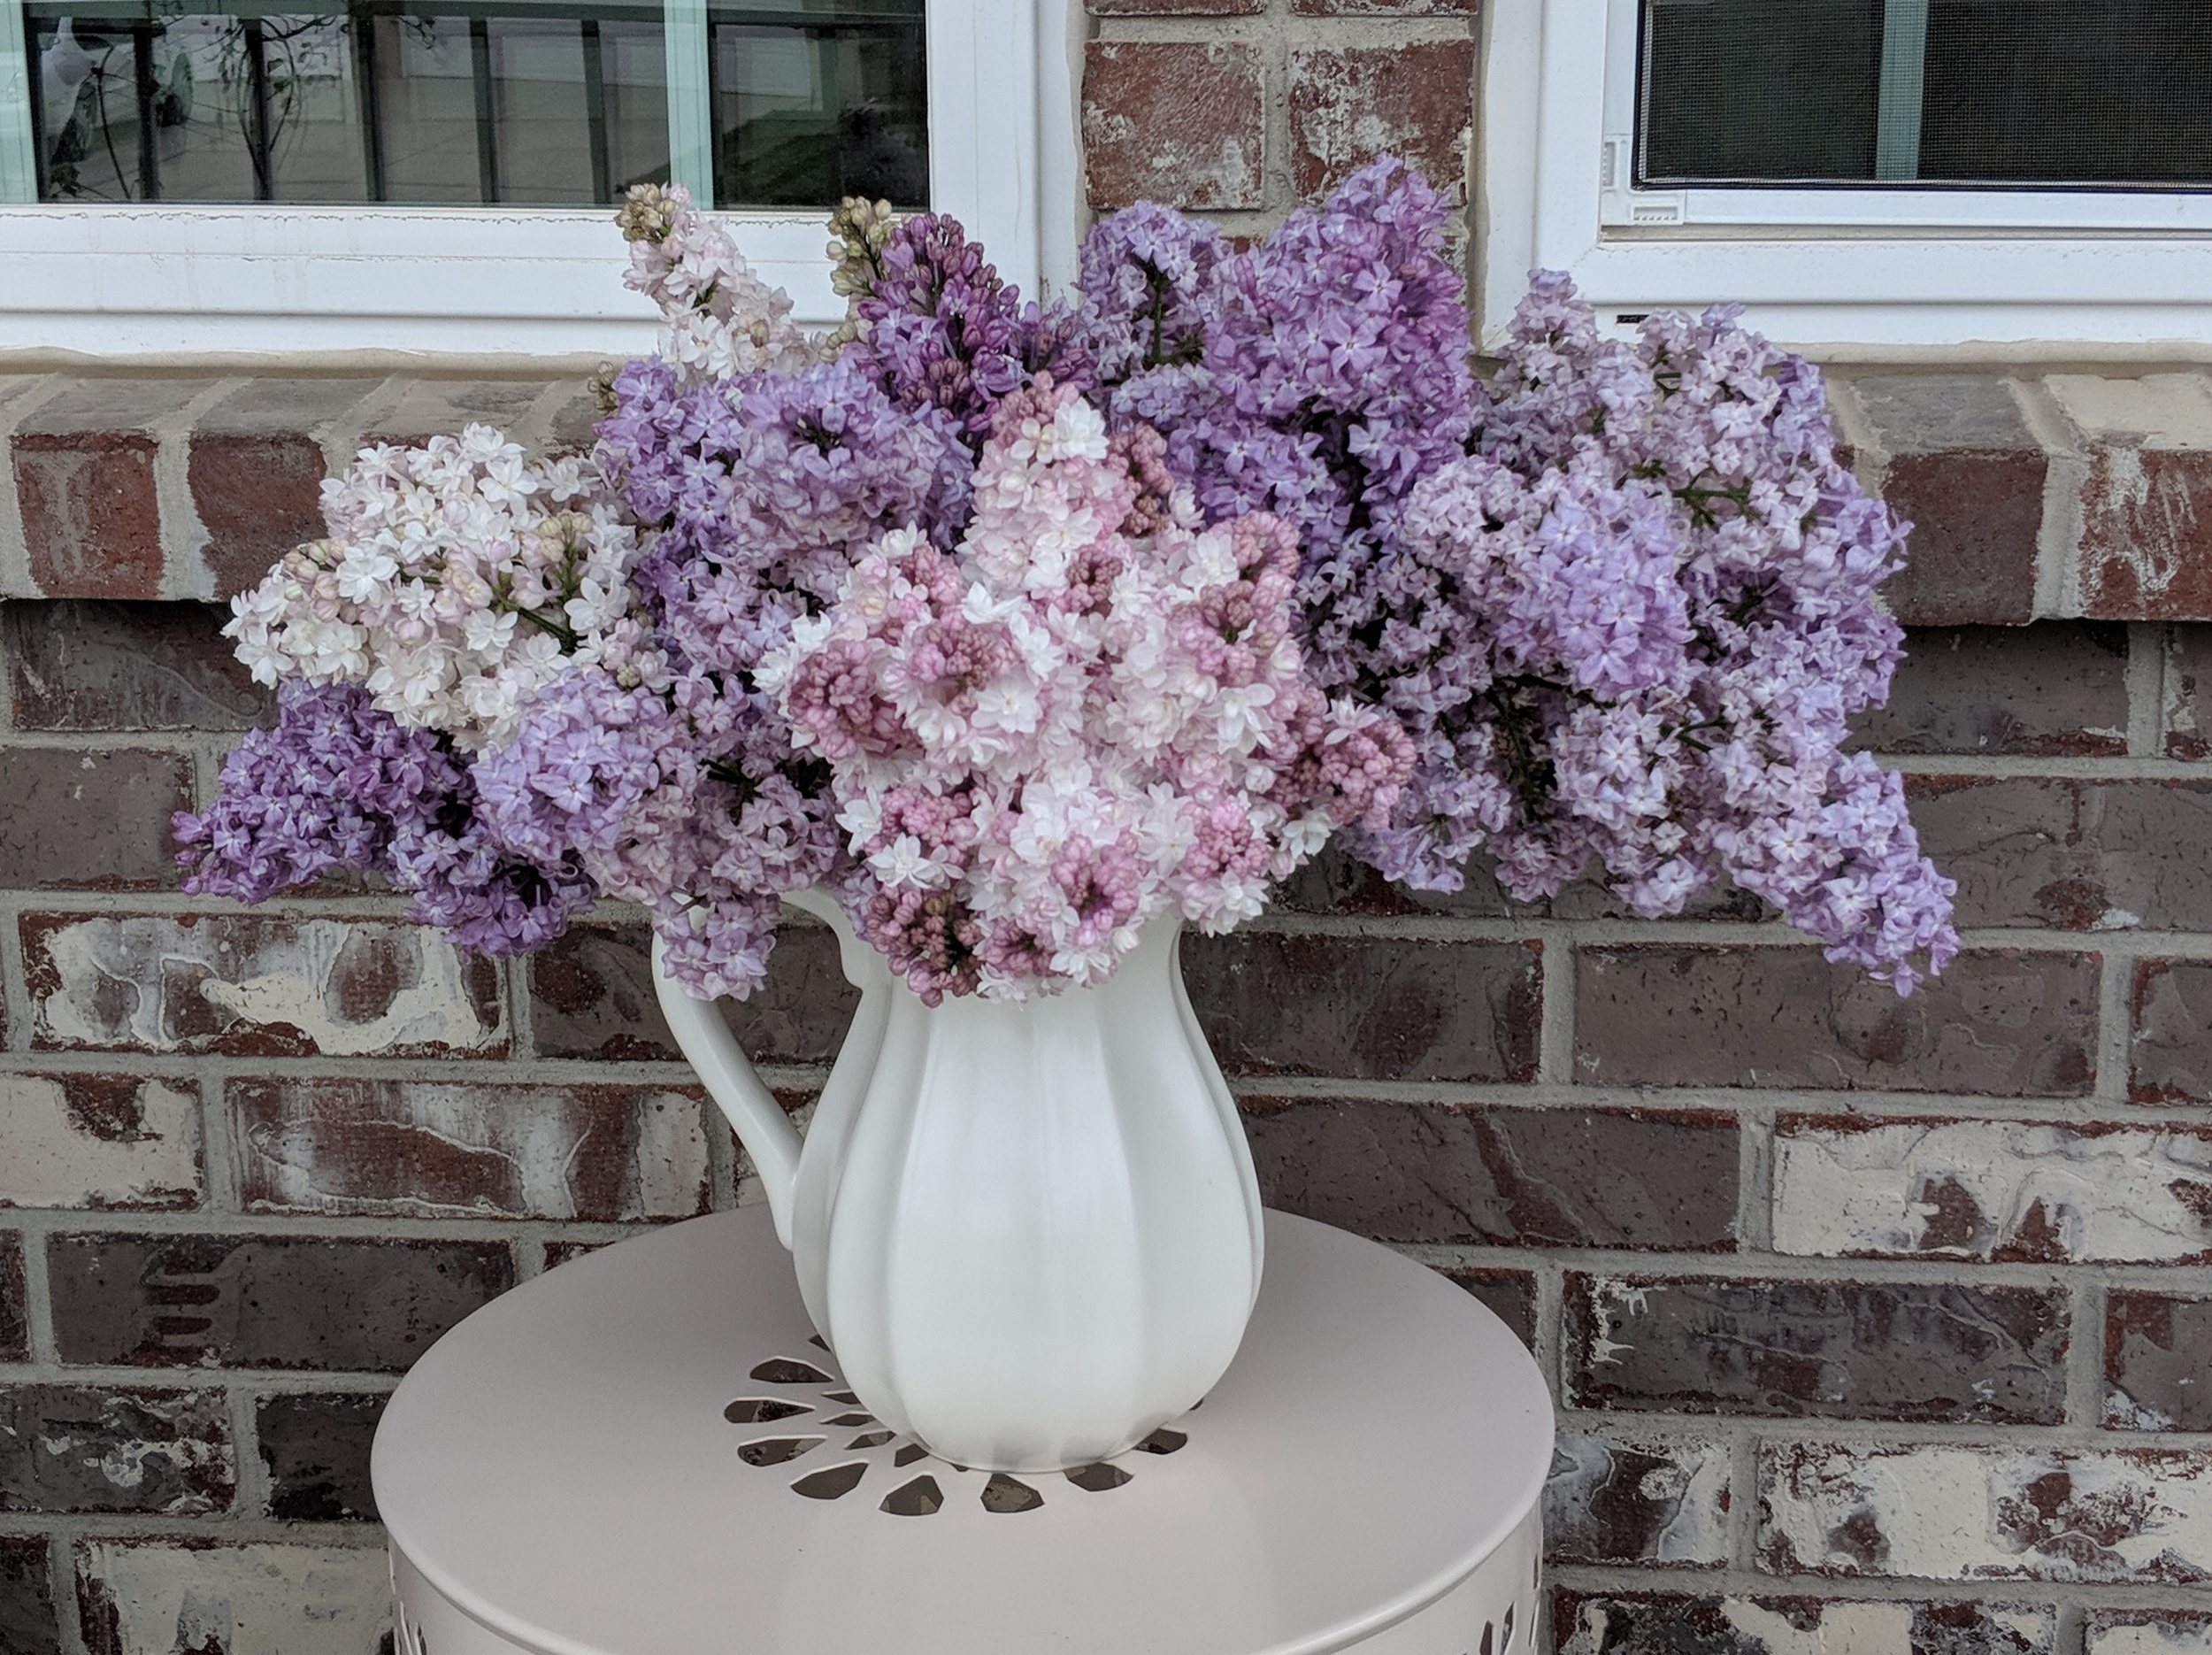 Spring lilacs in a classic white pitcher.